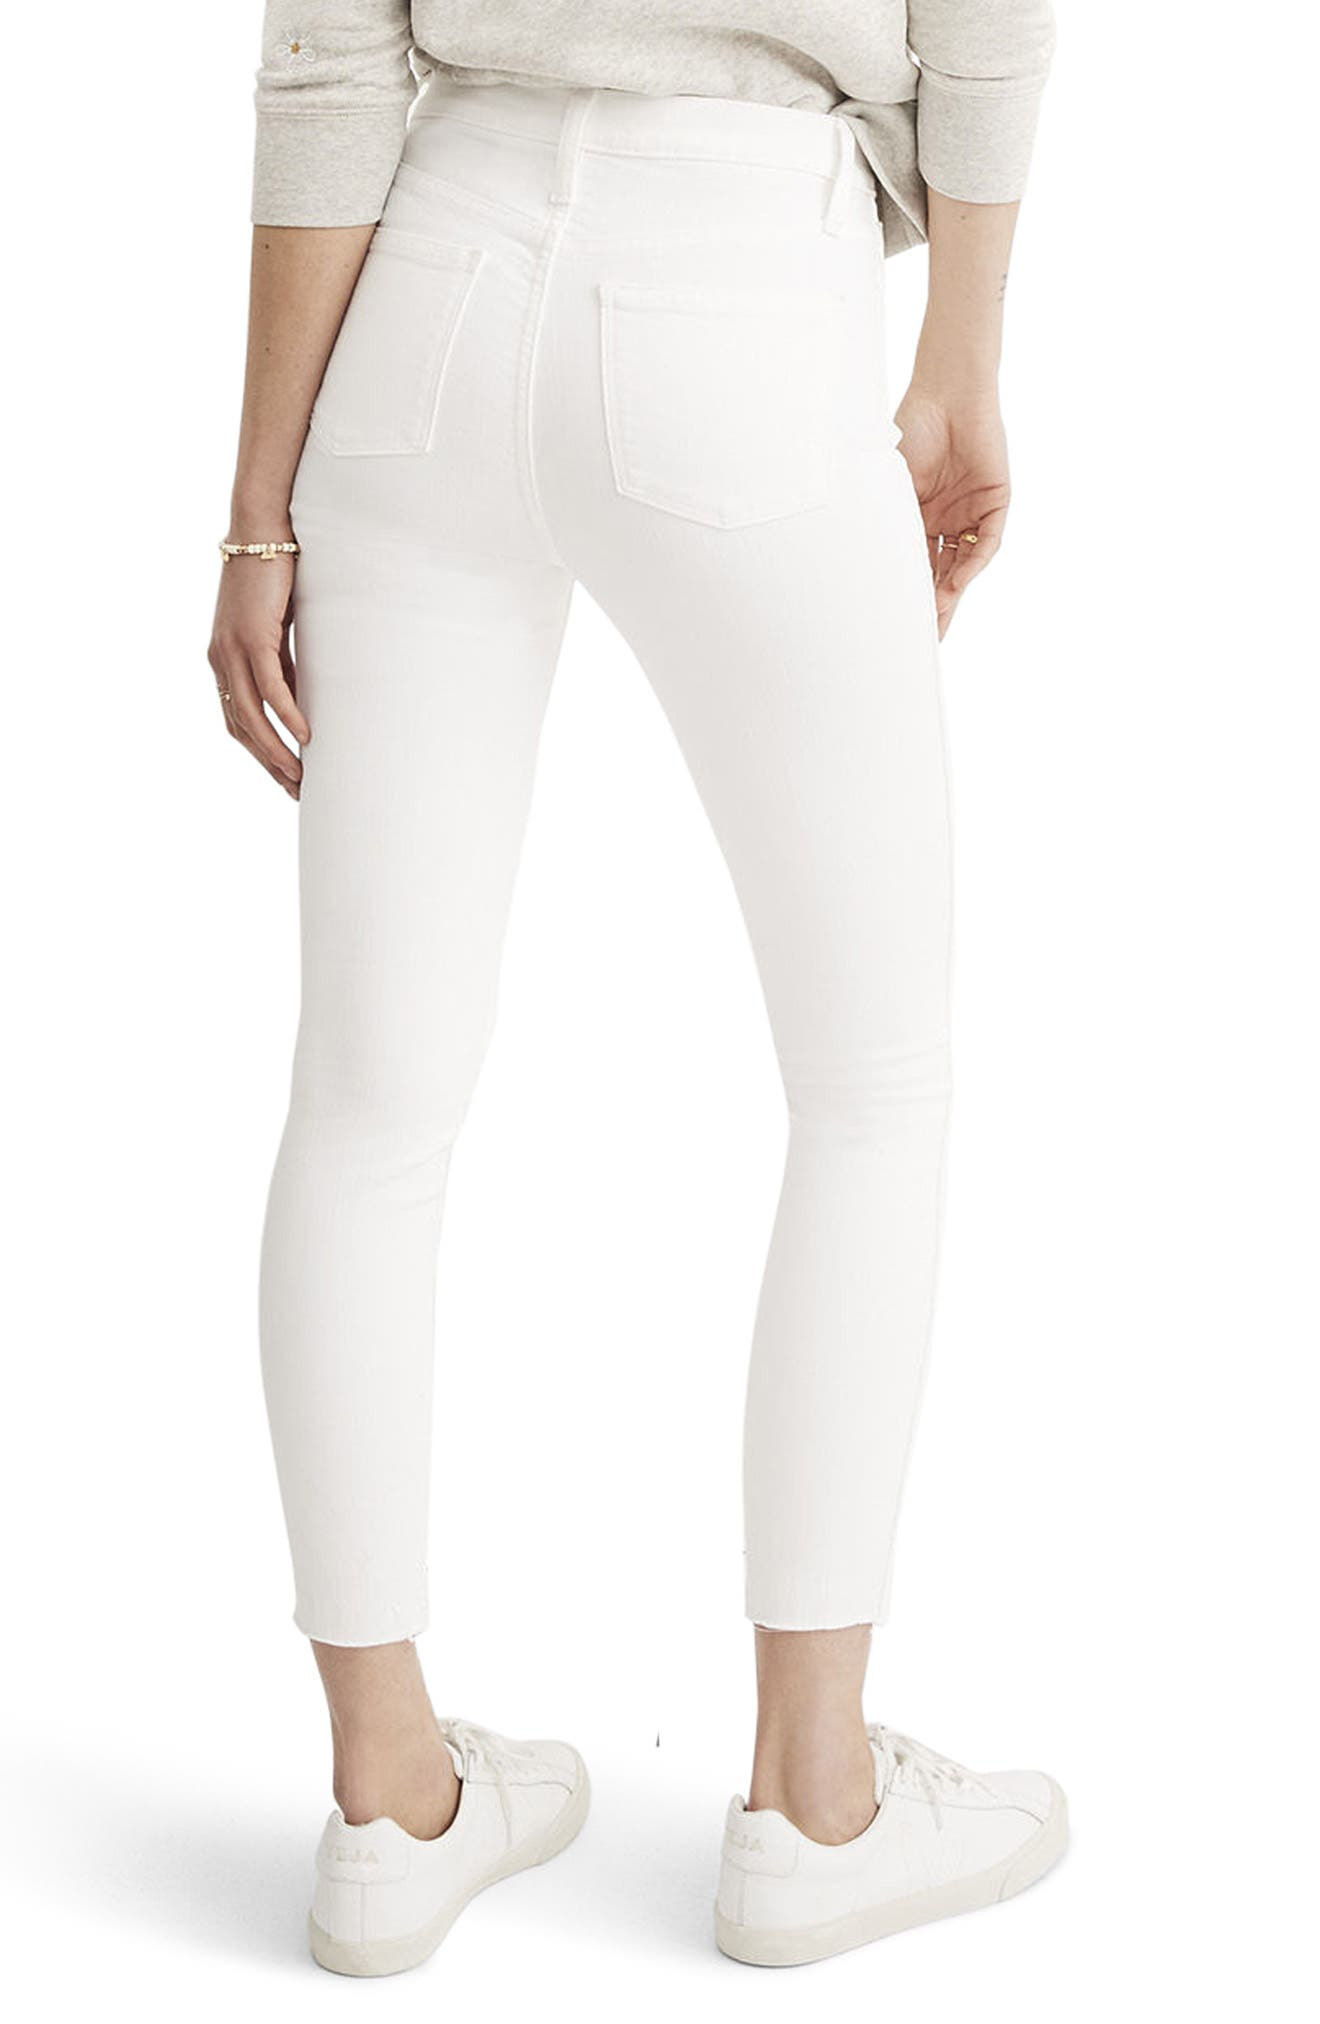 10-Inch Button High Waist Crop Skinny Jeans,                             Alternate thumbnail 2, color,                             PURE WHITE